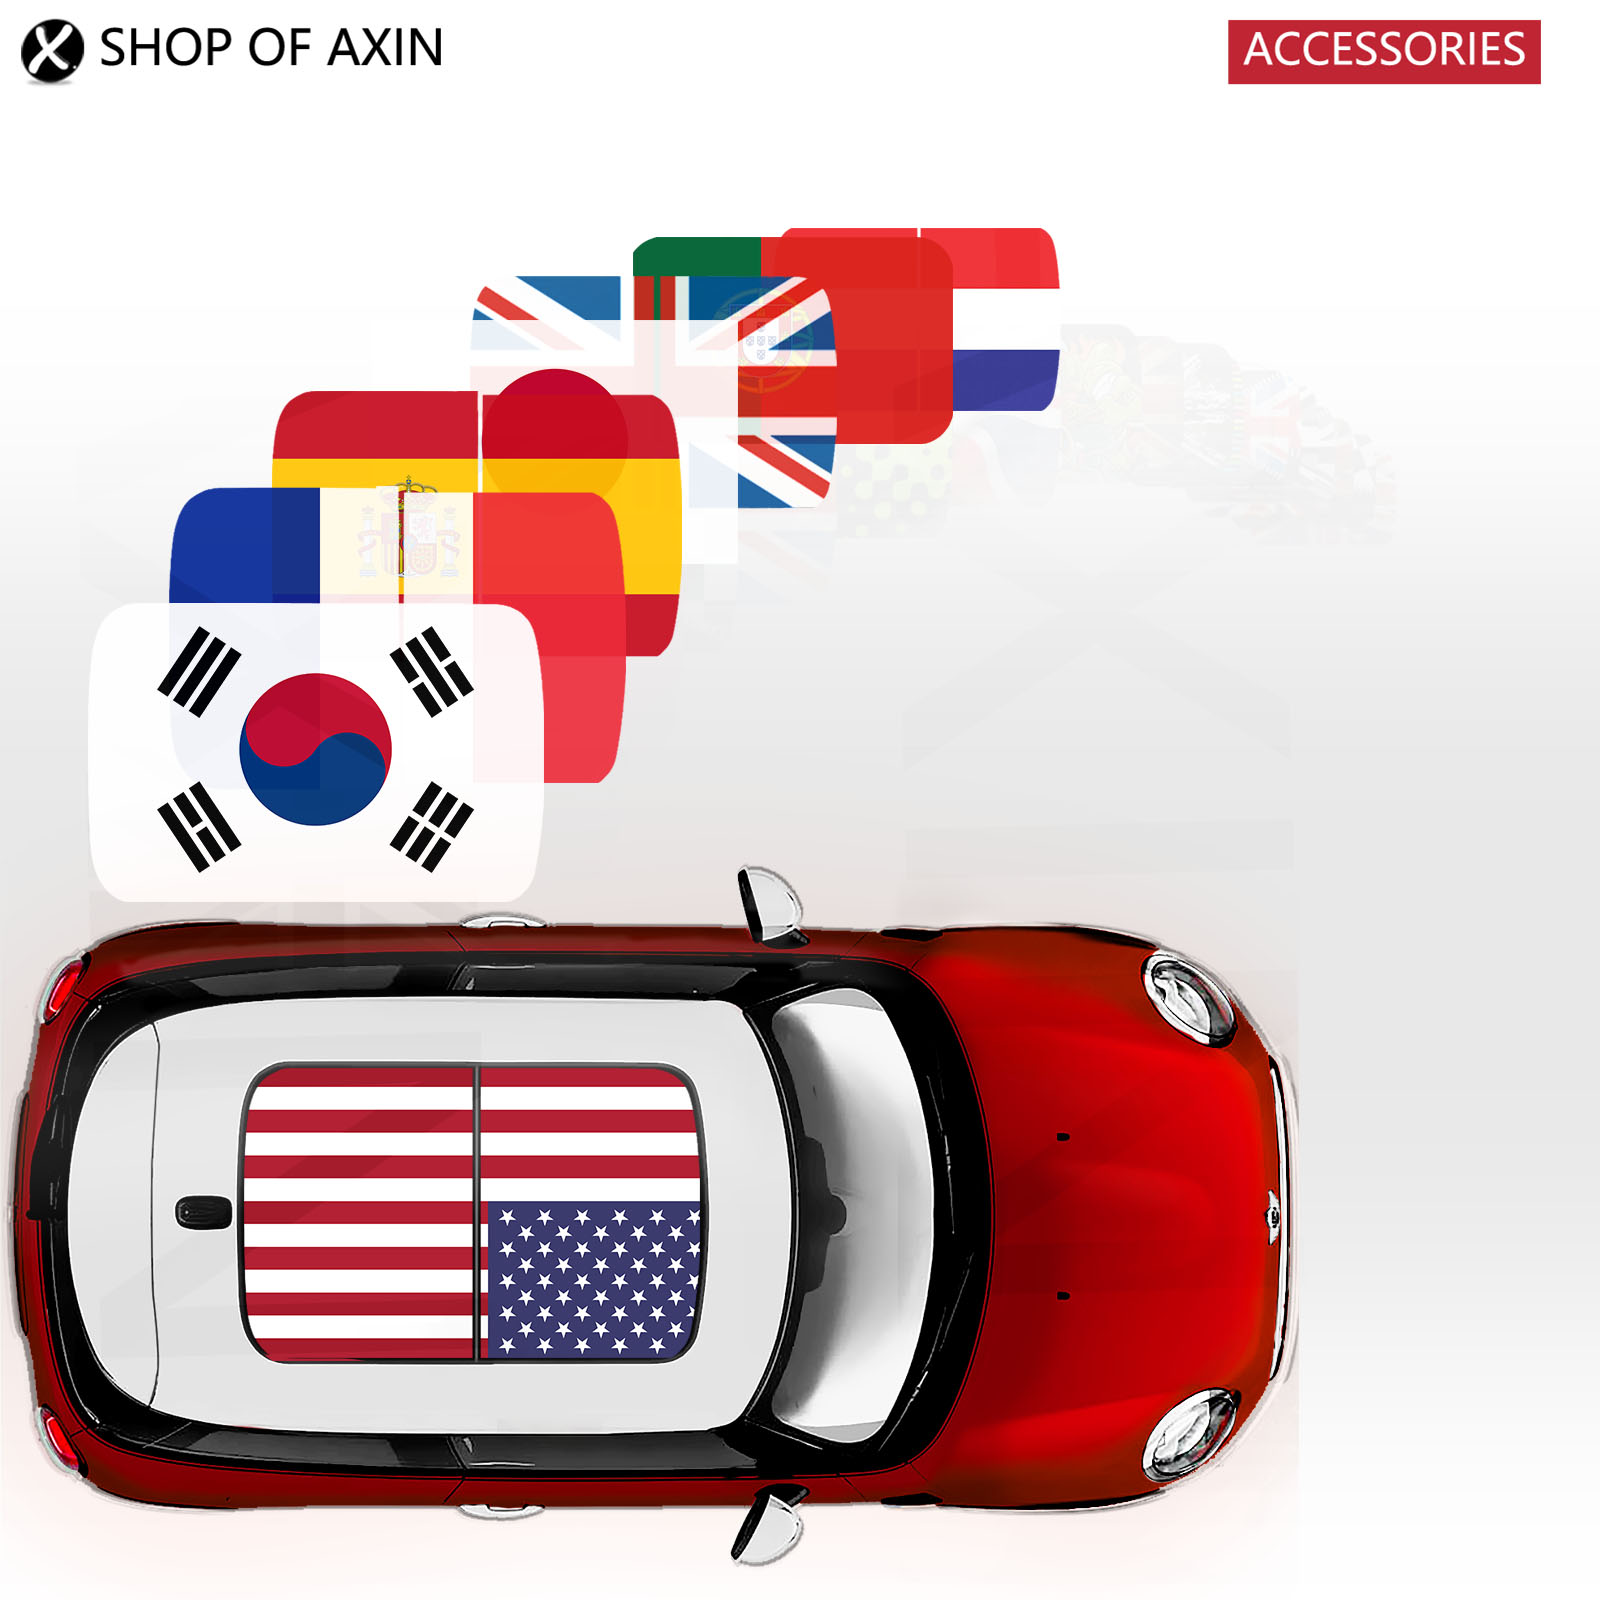 Flag Sunroof Moonroof Graphics stickers for MINI Cooper clubman countryman hardtop R50 R53 R55 R56 R60 R61 F54 F55 F56 F60 hood stripes car stickers decals car styling for mini cooper s countryman clubman paceman r56 r60 r61 f54 f55 f56 accessories